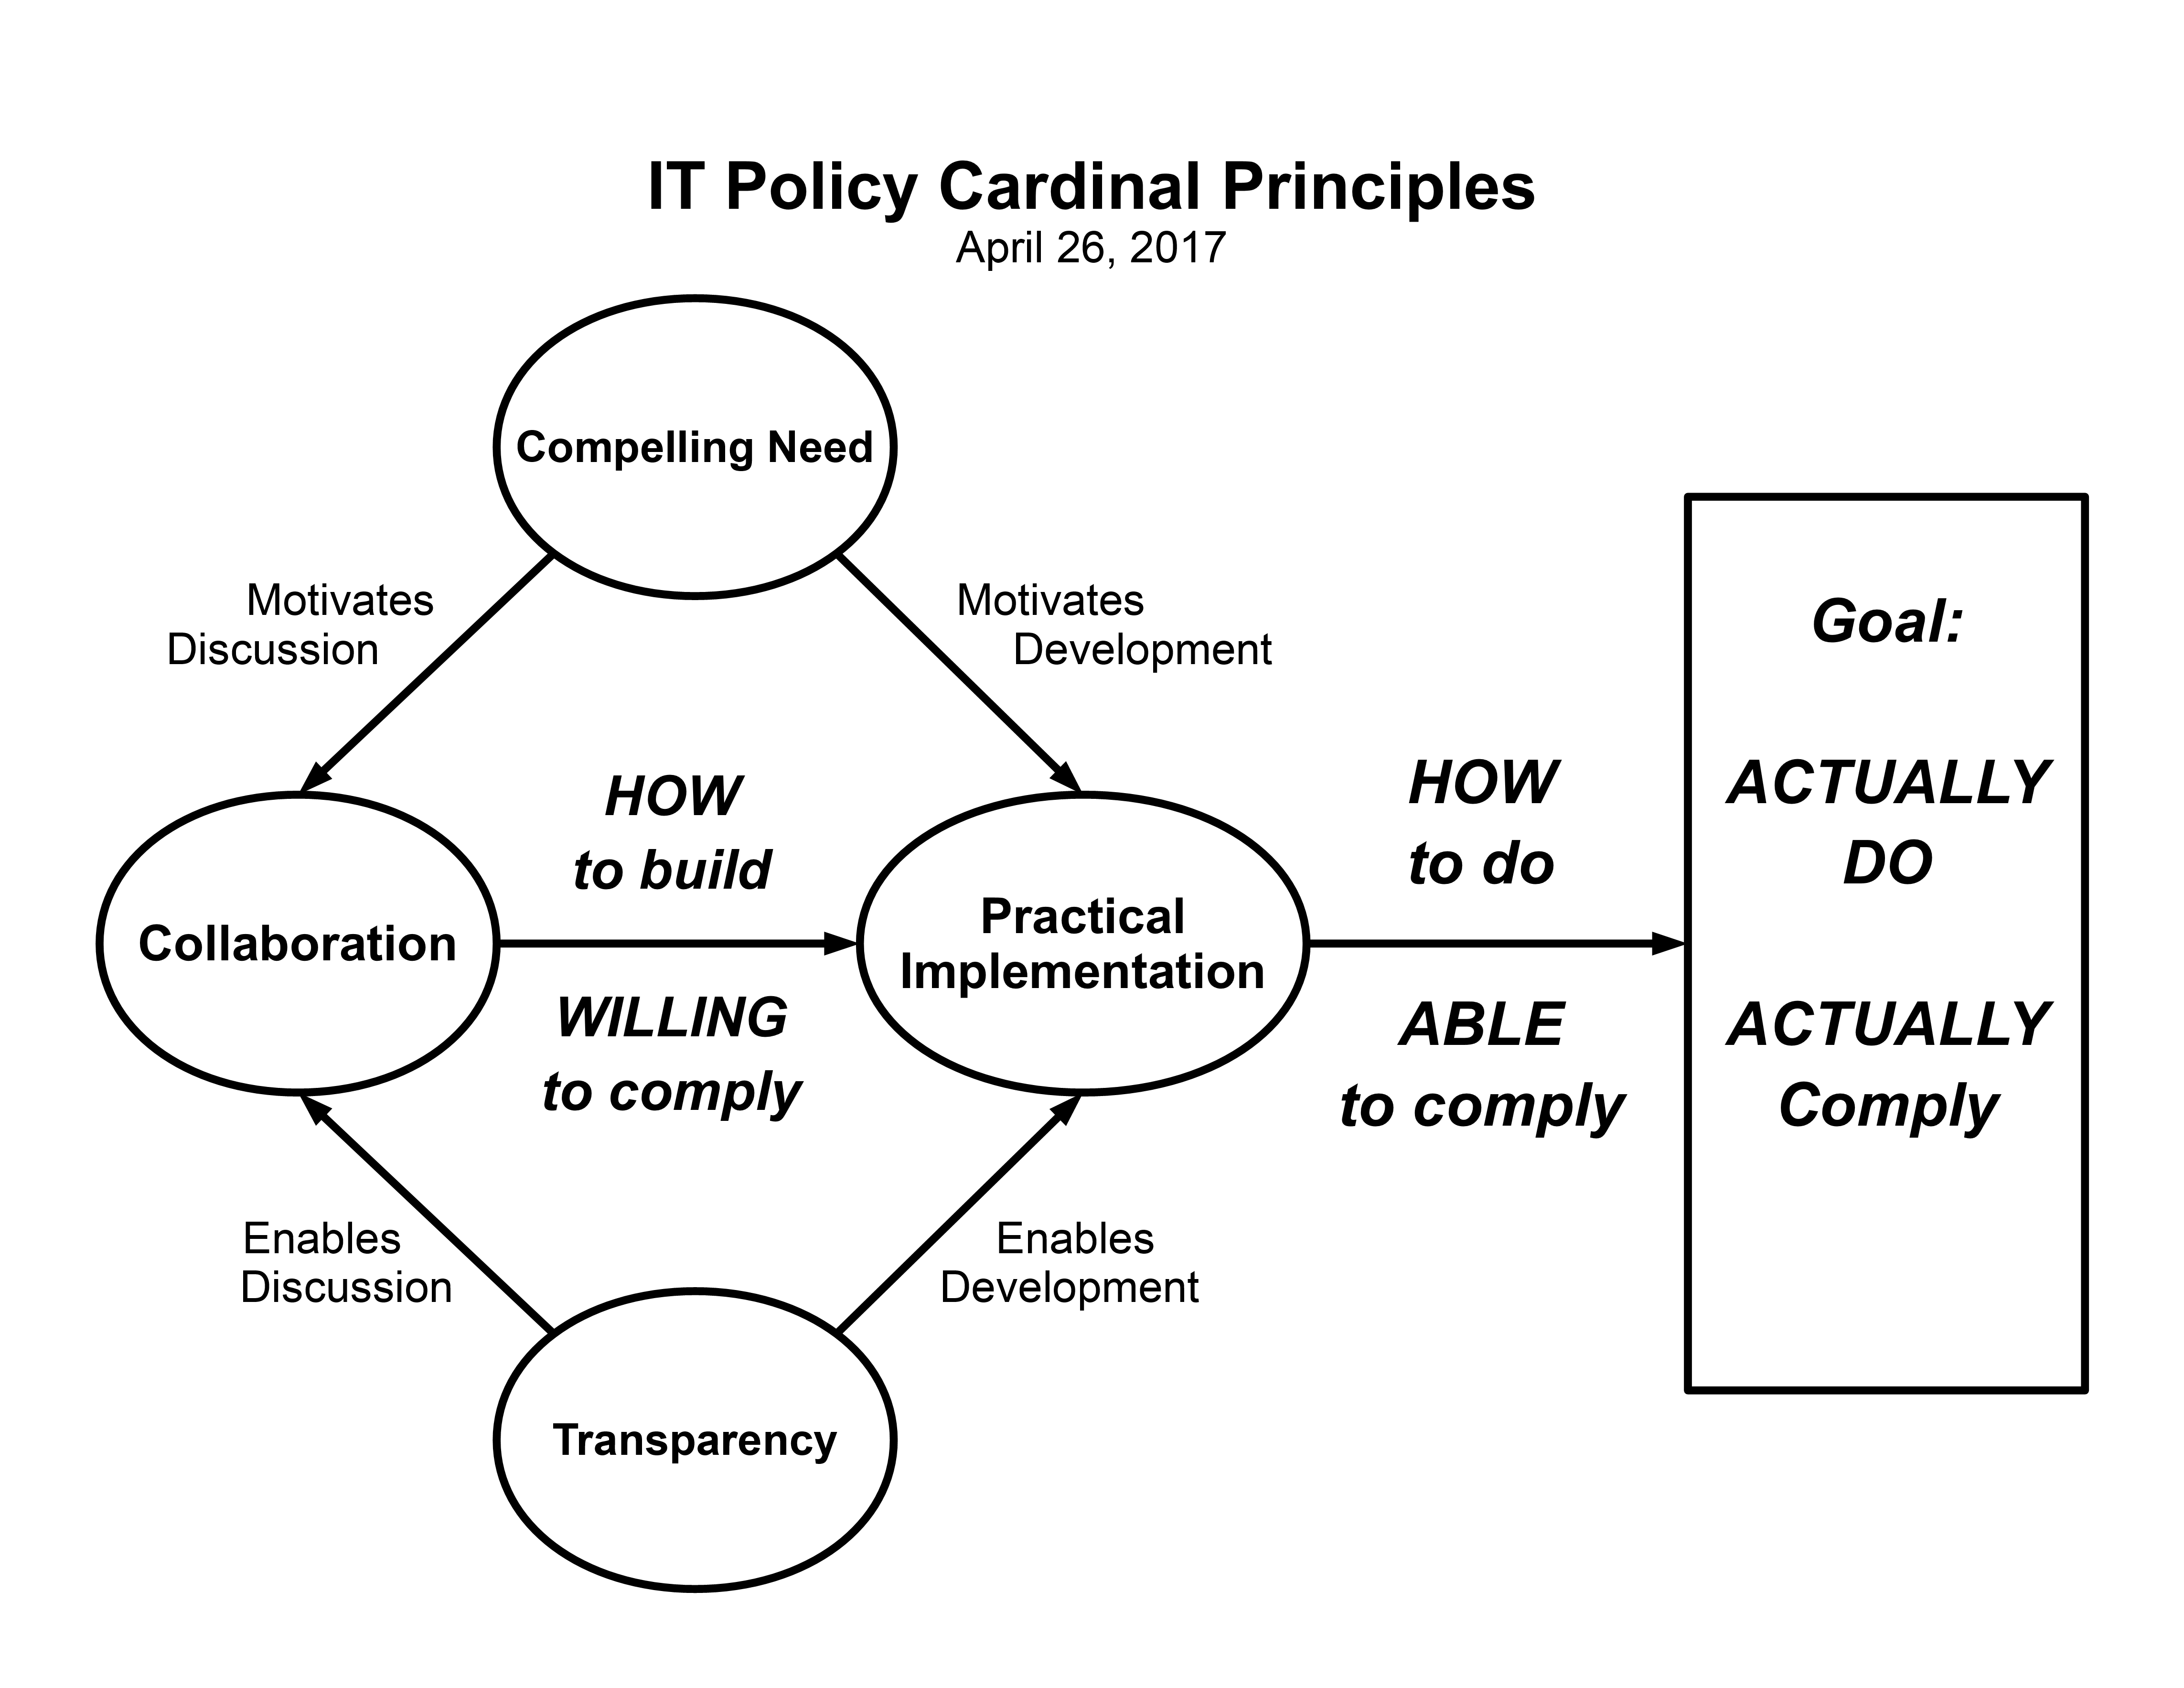 Following the cardinal principles enable people to comply